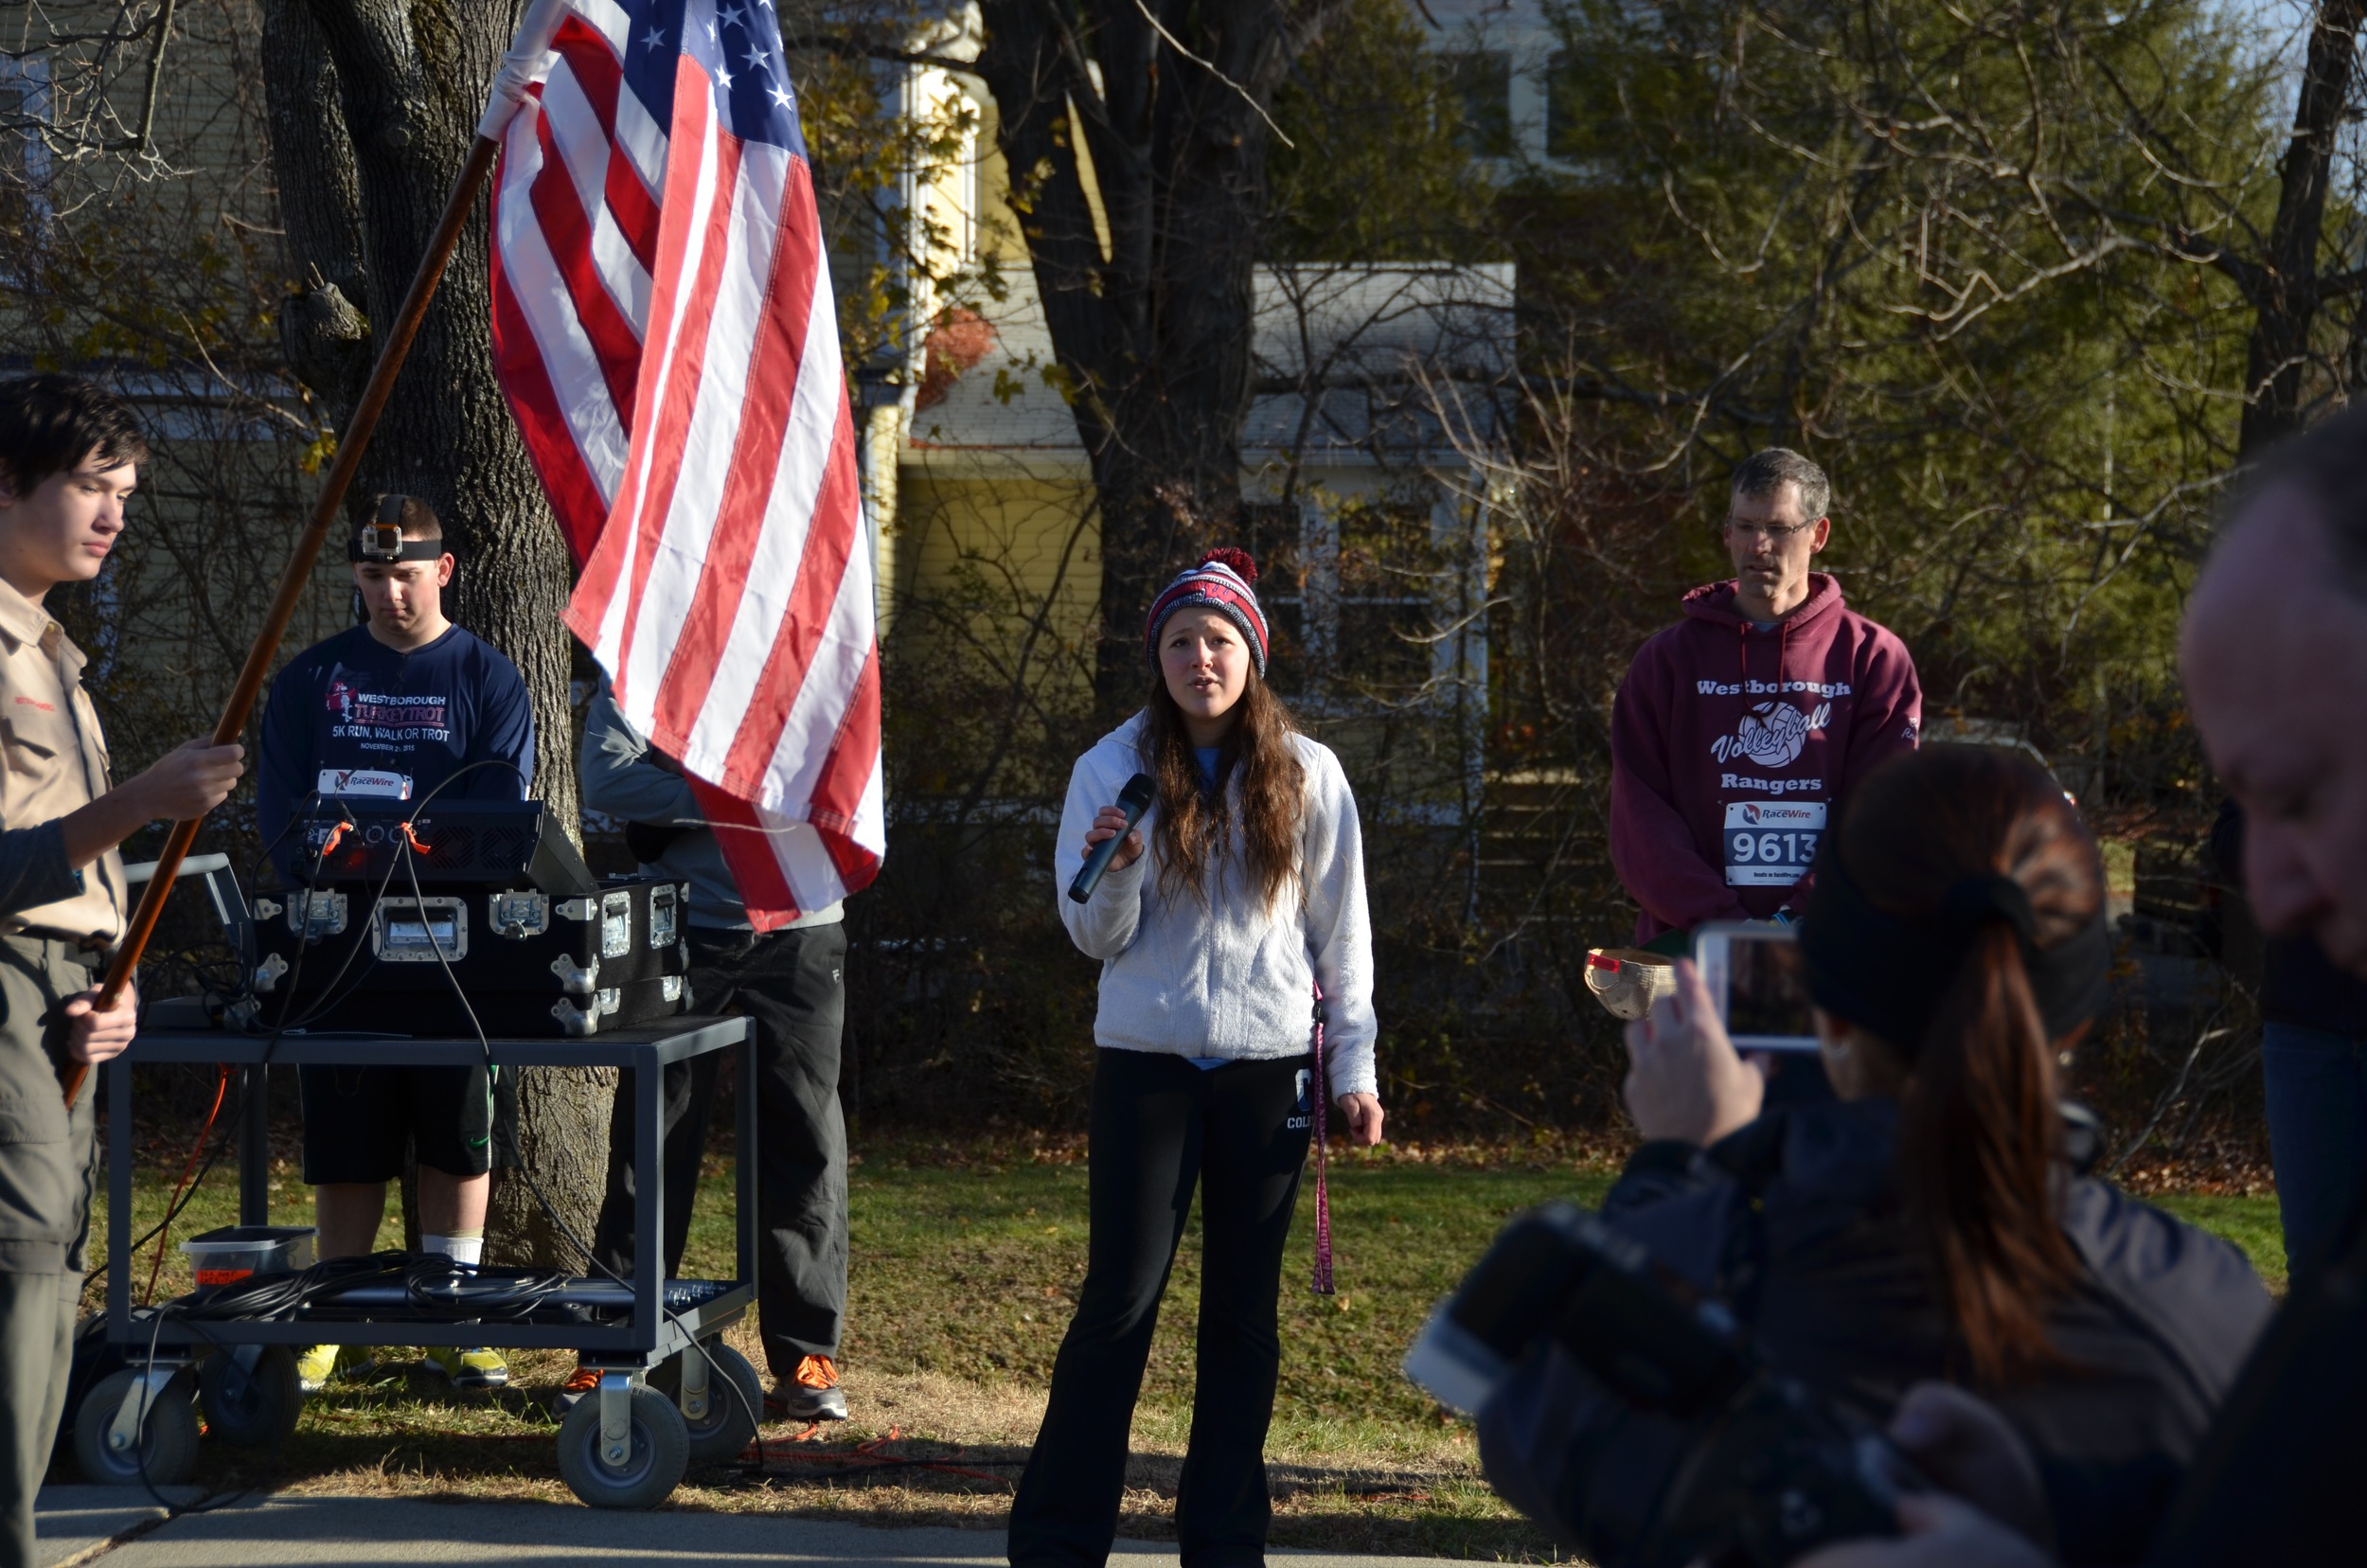 D7K_0029895-Westborough-Turkey-Trot-2015-11-21.jpg